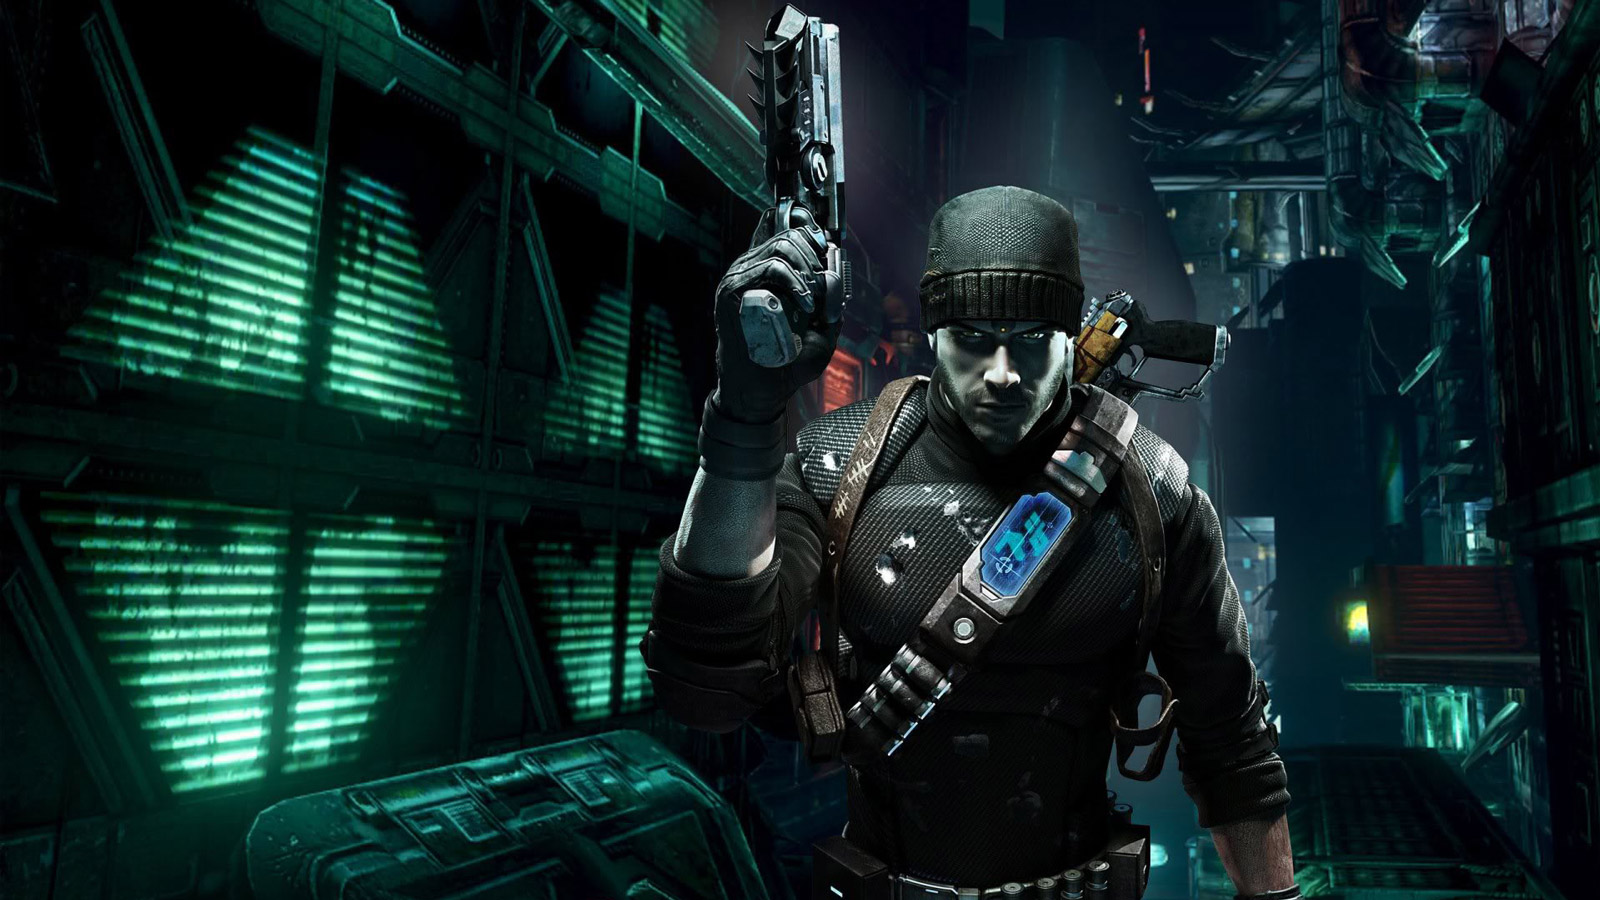 Free Prey 2 Wallpaper in 1600x900